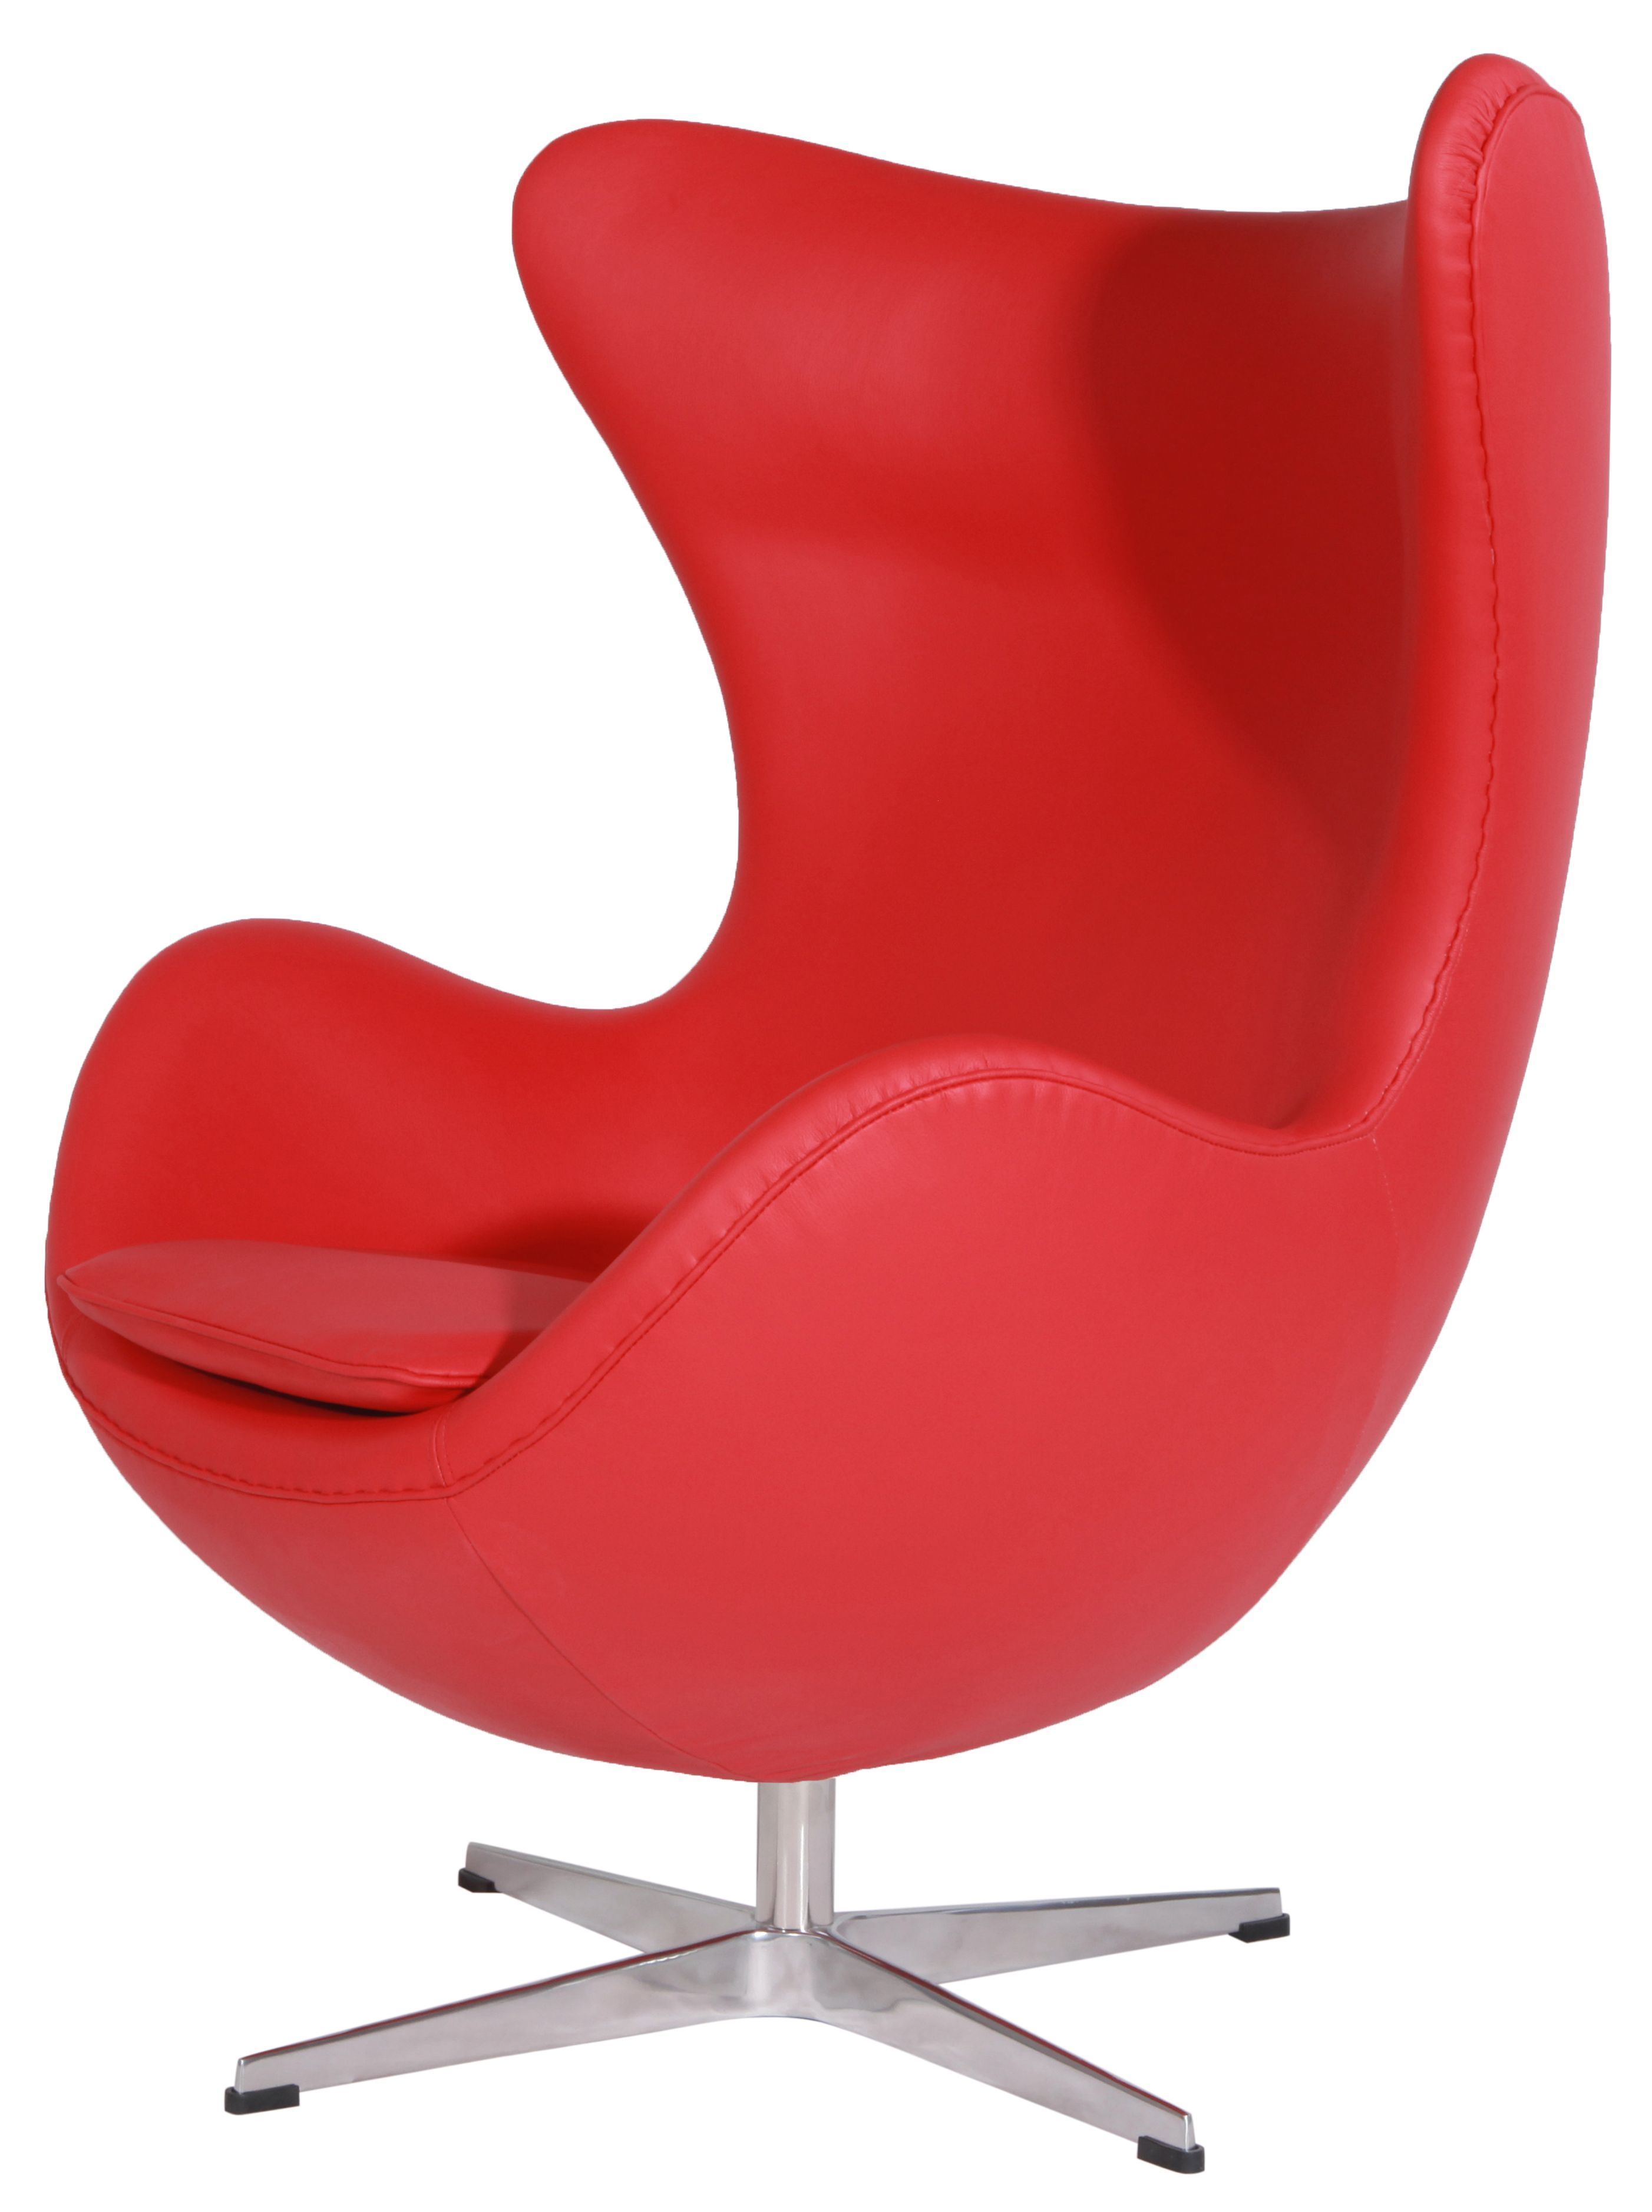 Red Italian Leather Egg Chair And Ottoman Chairottoman